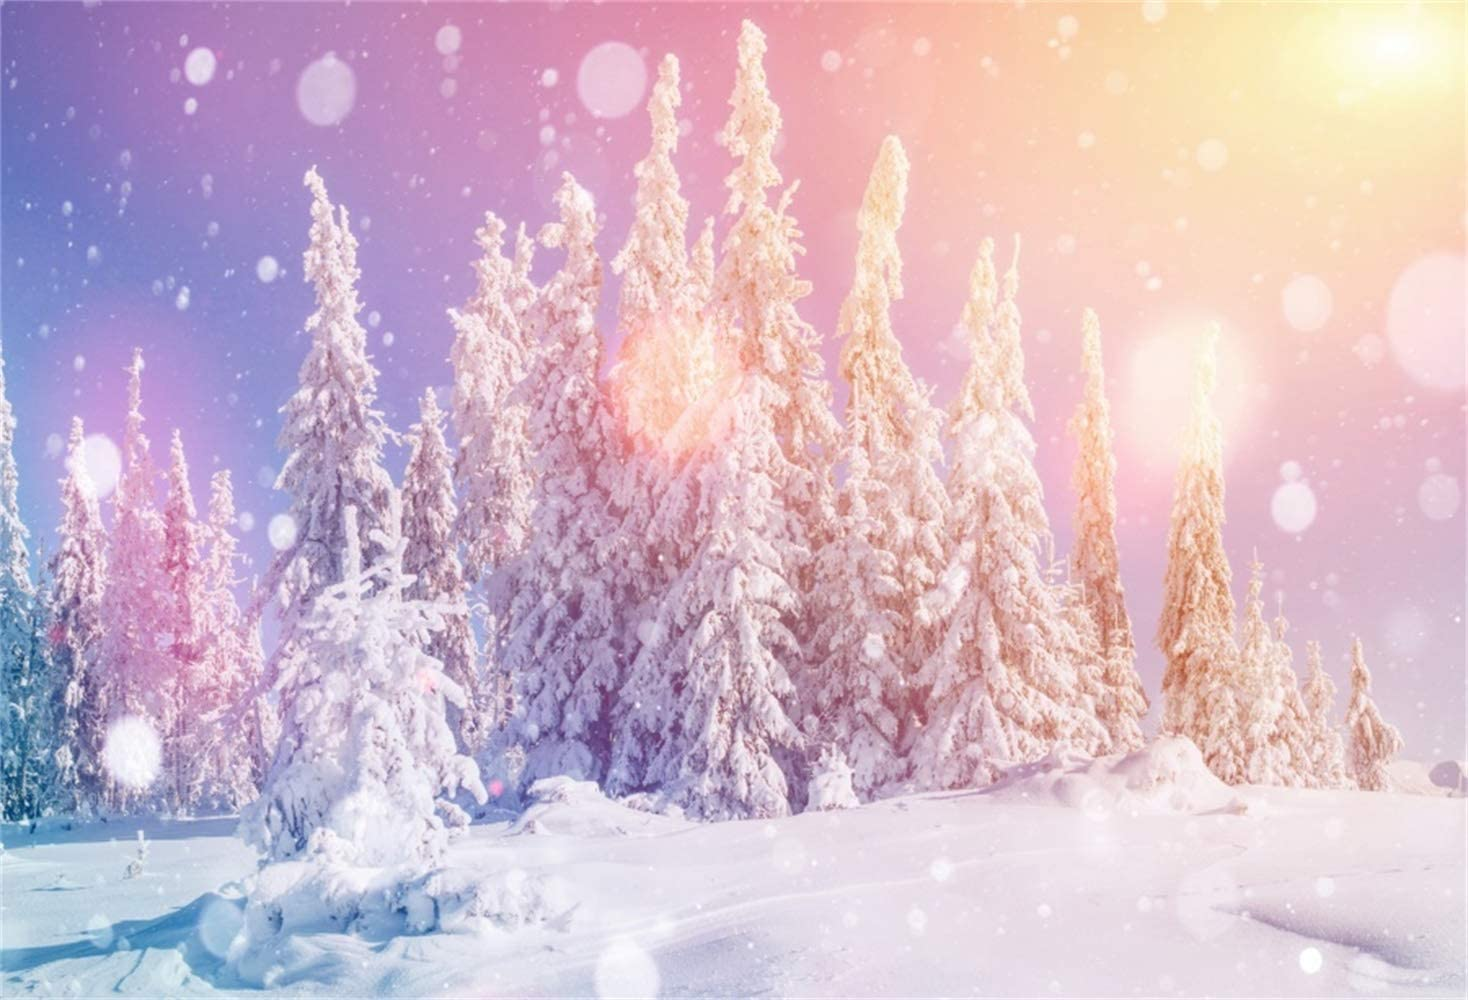 Twilight Snowscpae Backdrop Polyester 10x6.5ft Winter Snowy Forest Flying Snow Frosty Trees Background Child Kids Baby Adult Portrait Shoot New Year Xmas Eve Party Banner Scenic Wallpaper